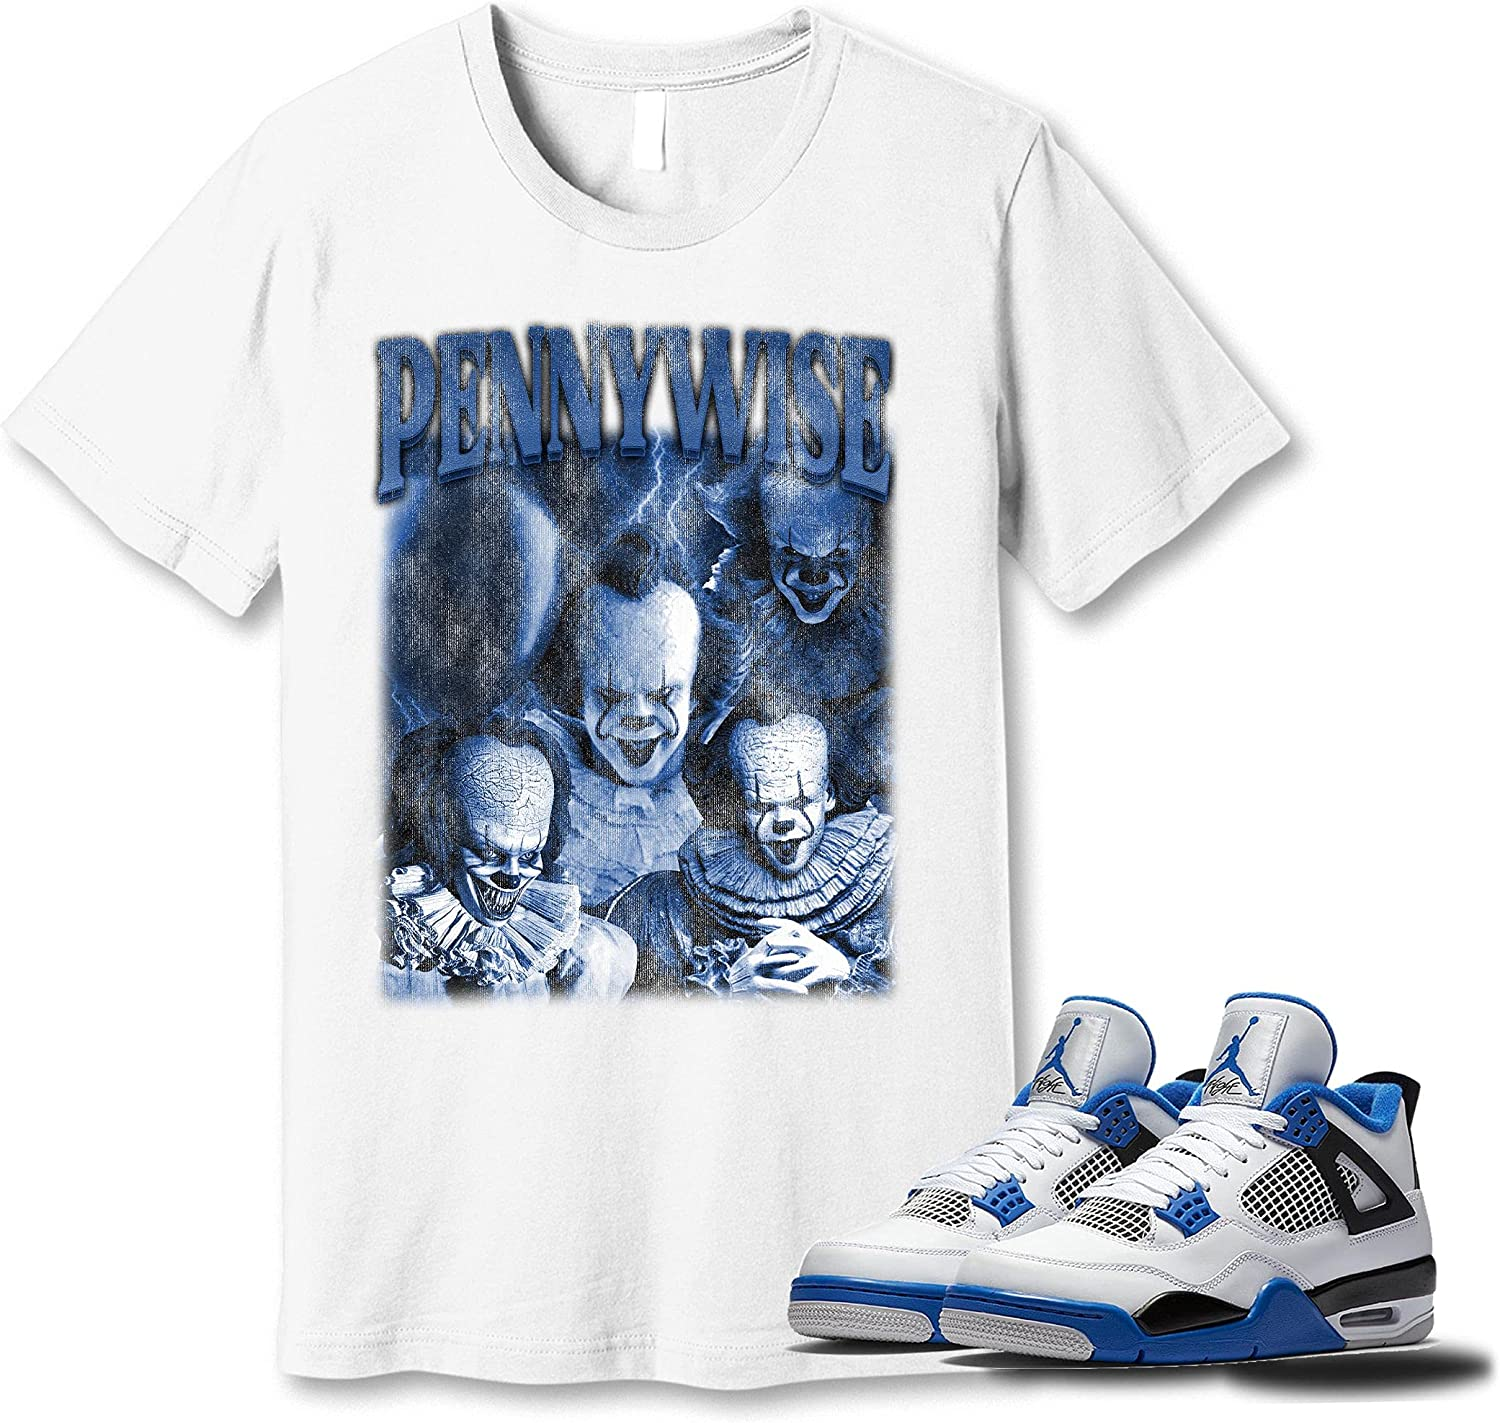 #Pennywise T-Shirt to Match Jordan Snkrs Colorado Springs Mall Sneaker Go High order 4 Motorsport